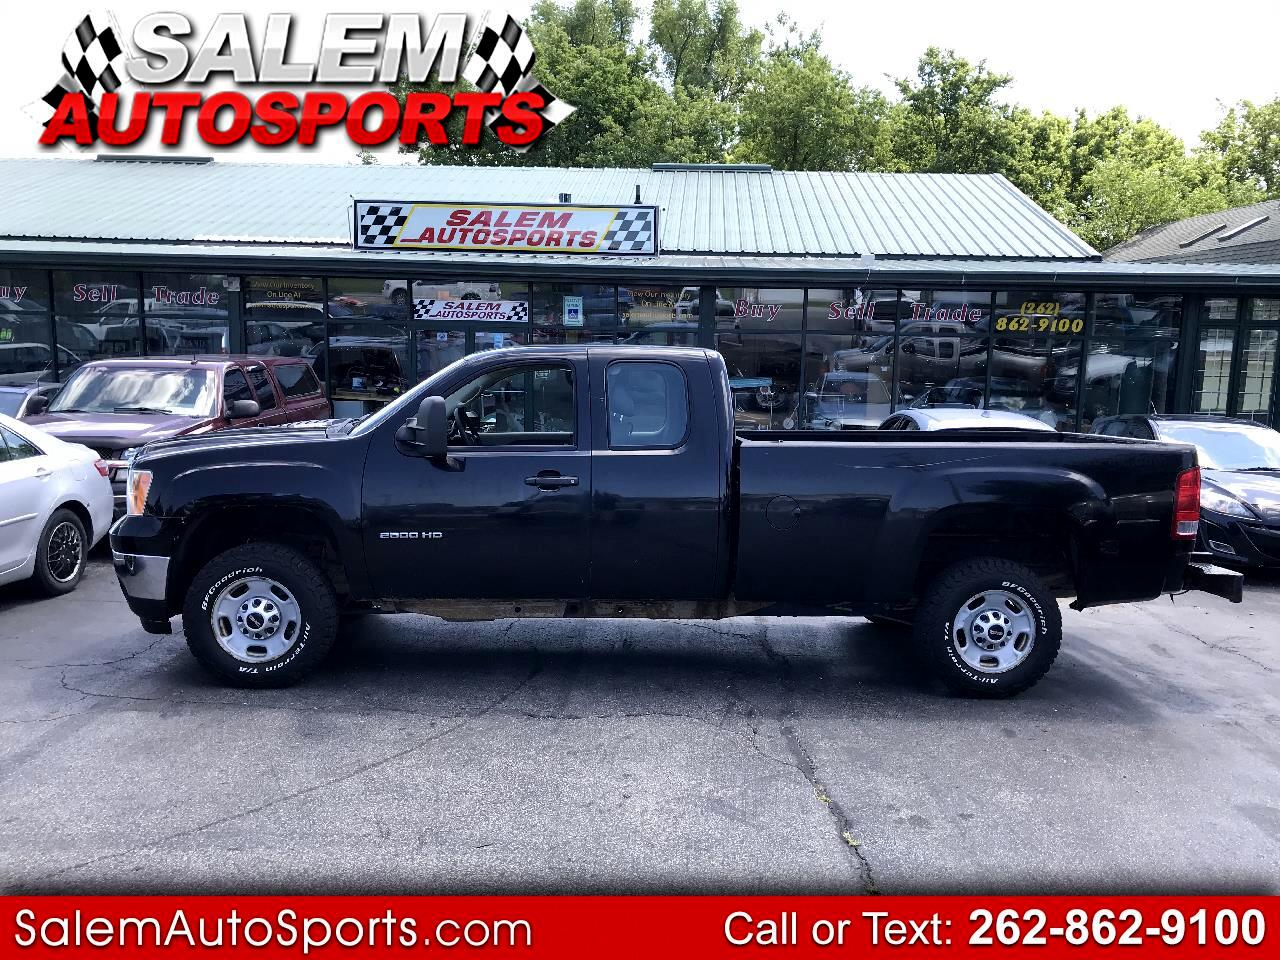 "2011 GMC Sierra 2500HD 2WD Ext Cab 158.2"" Work Truck"